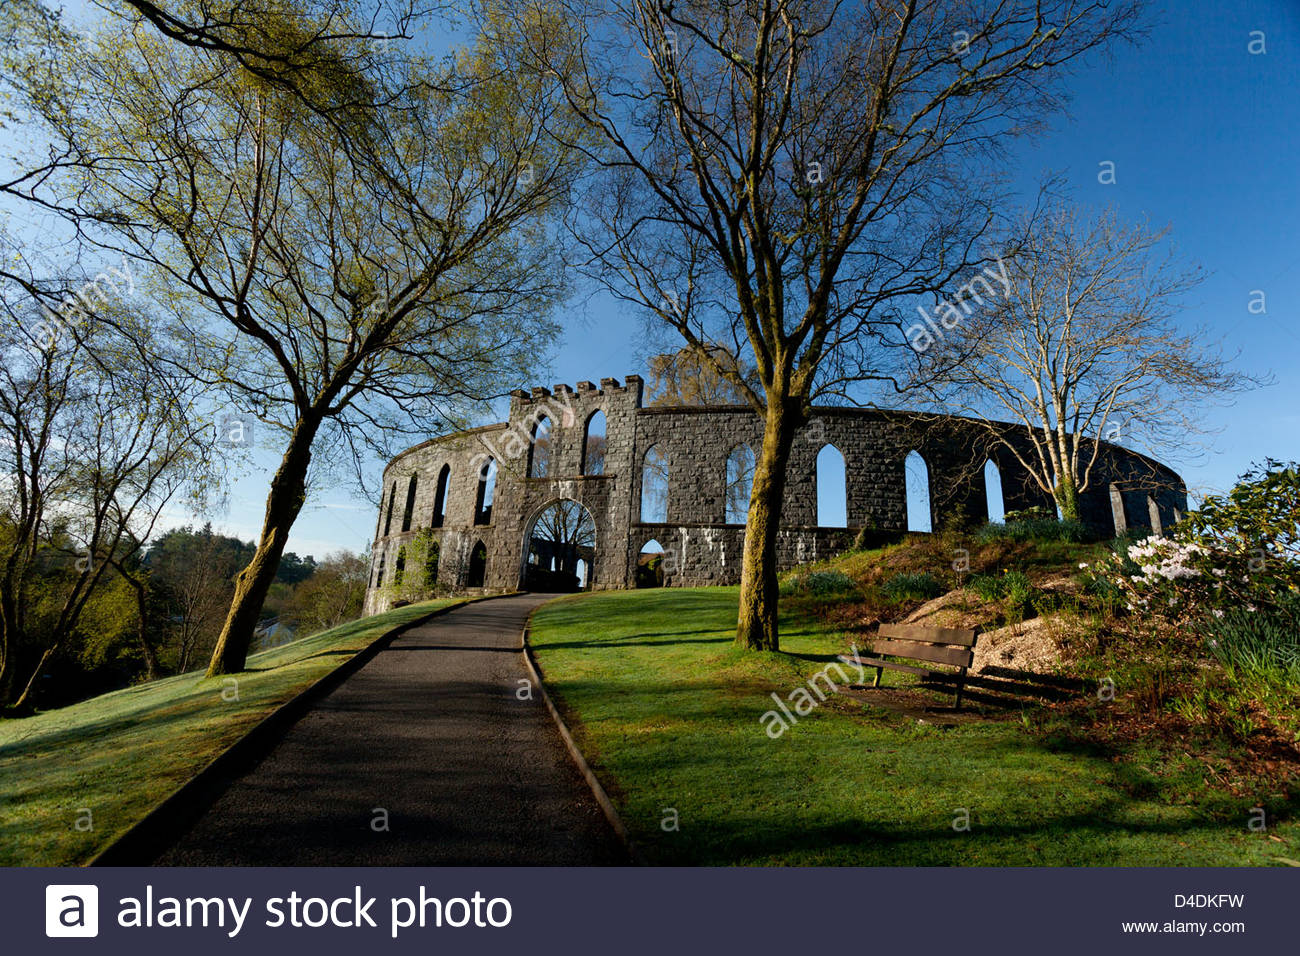 McCaig's Tower is a prominent folly on the hillside overlooking Oban in Argyll, Scotland. - Stock Image